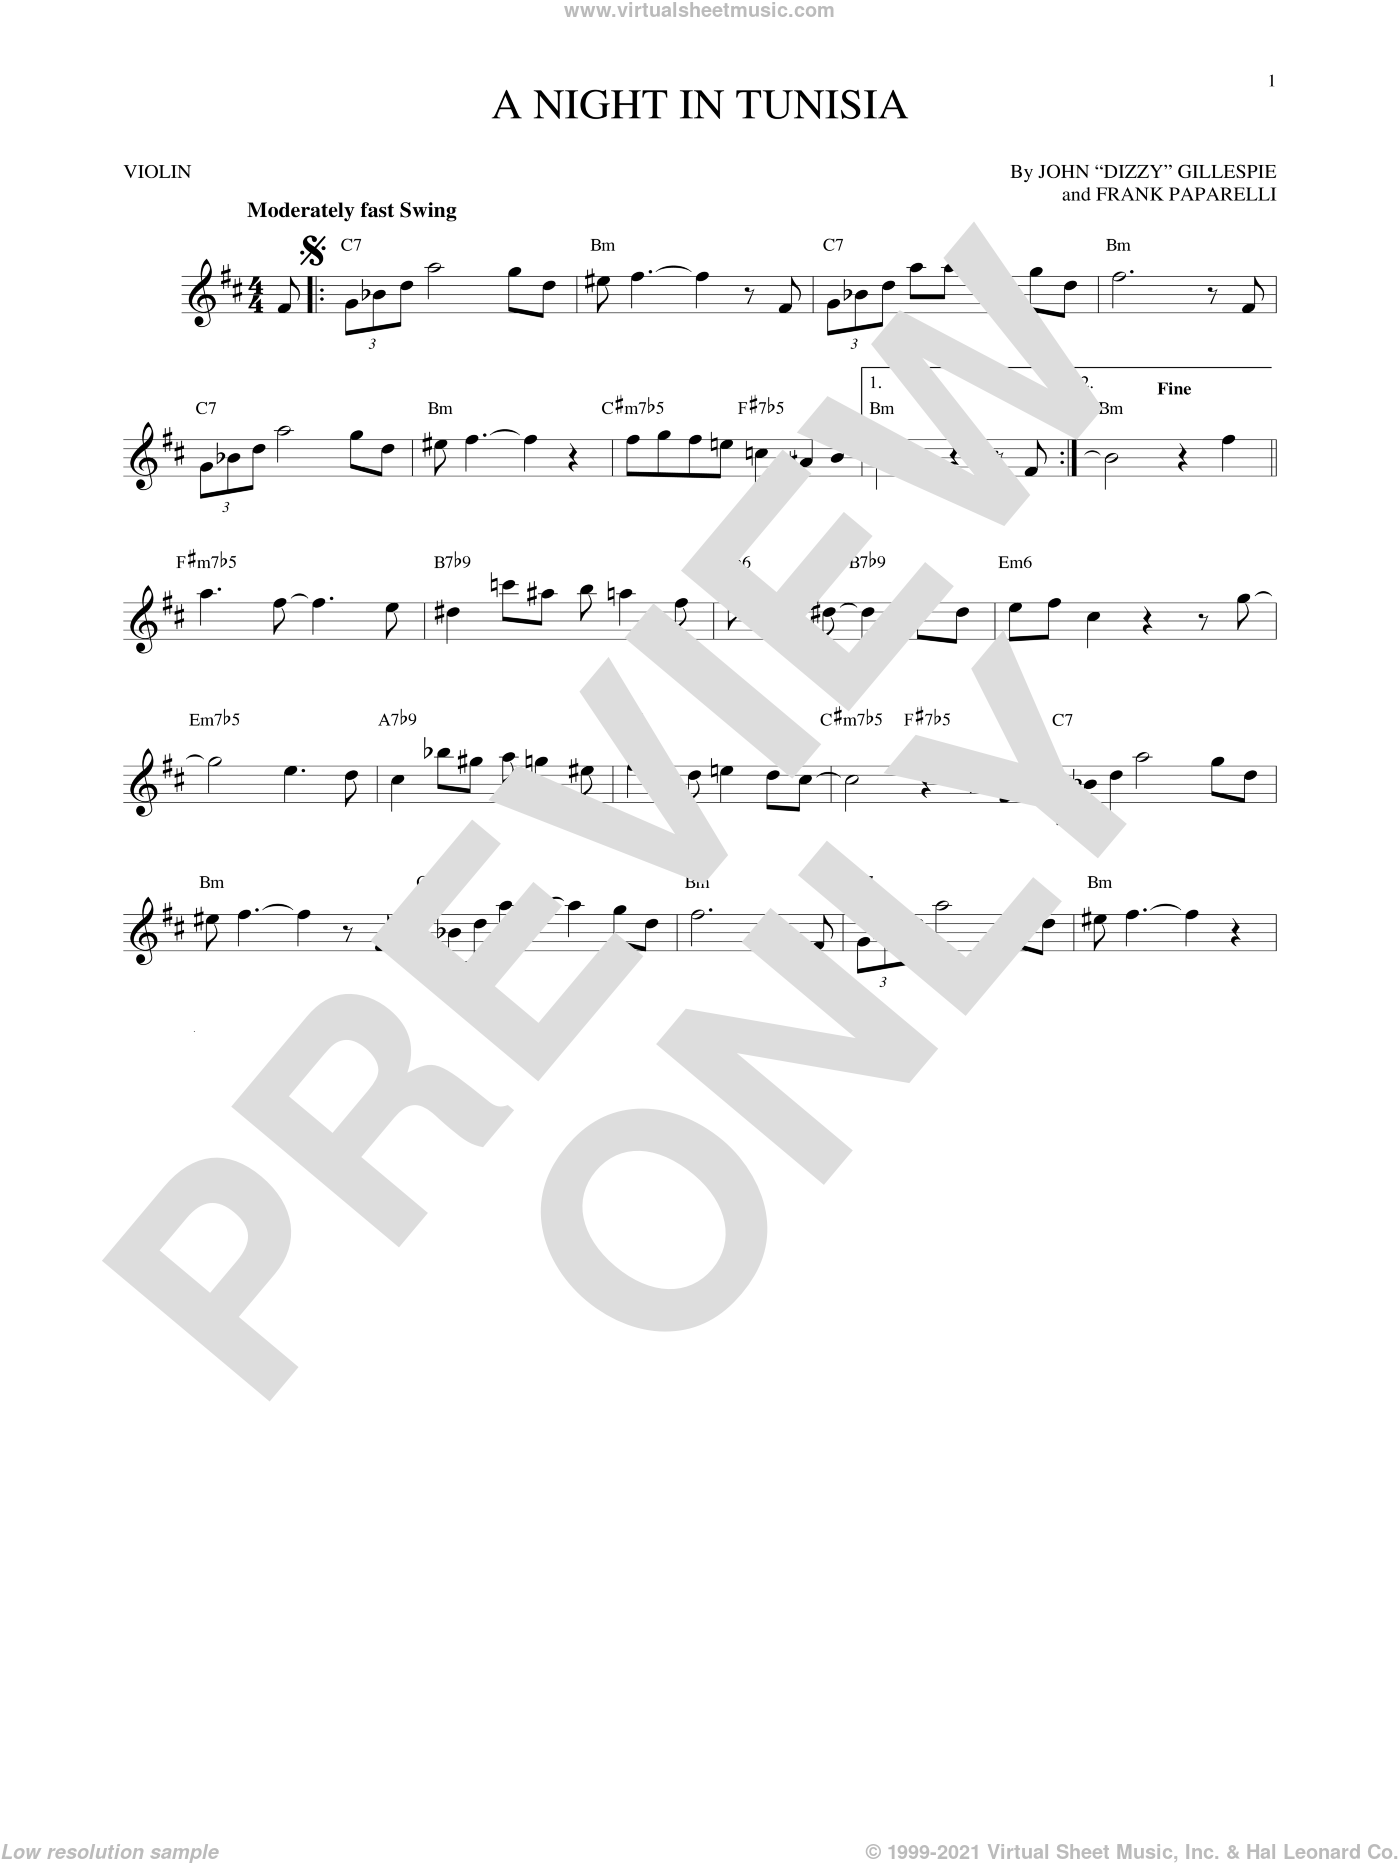 A Night In Tunisia sheet music for violin solo by Dizzy Gillespie and Frank Paparelli, intermediate skill level